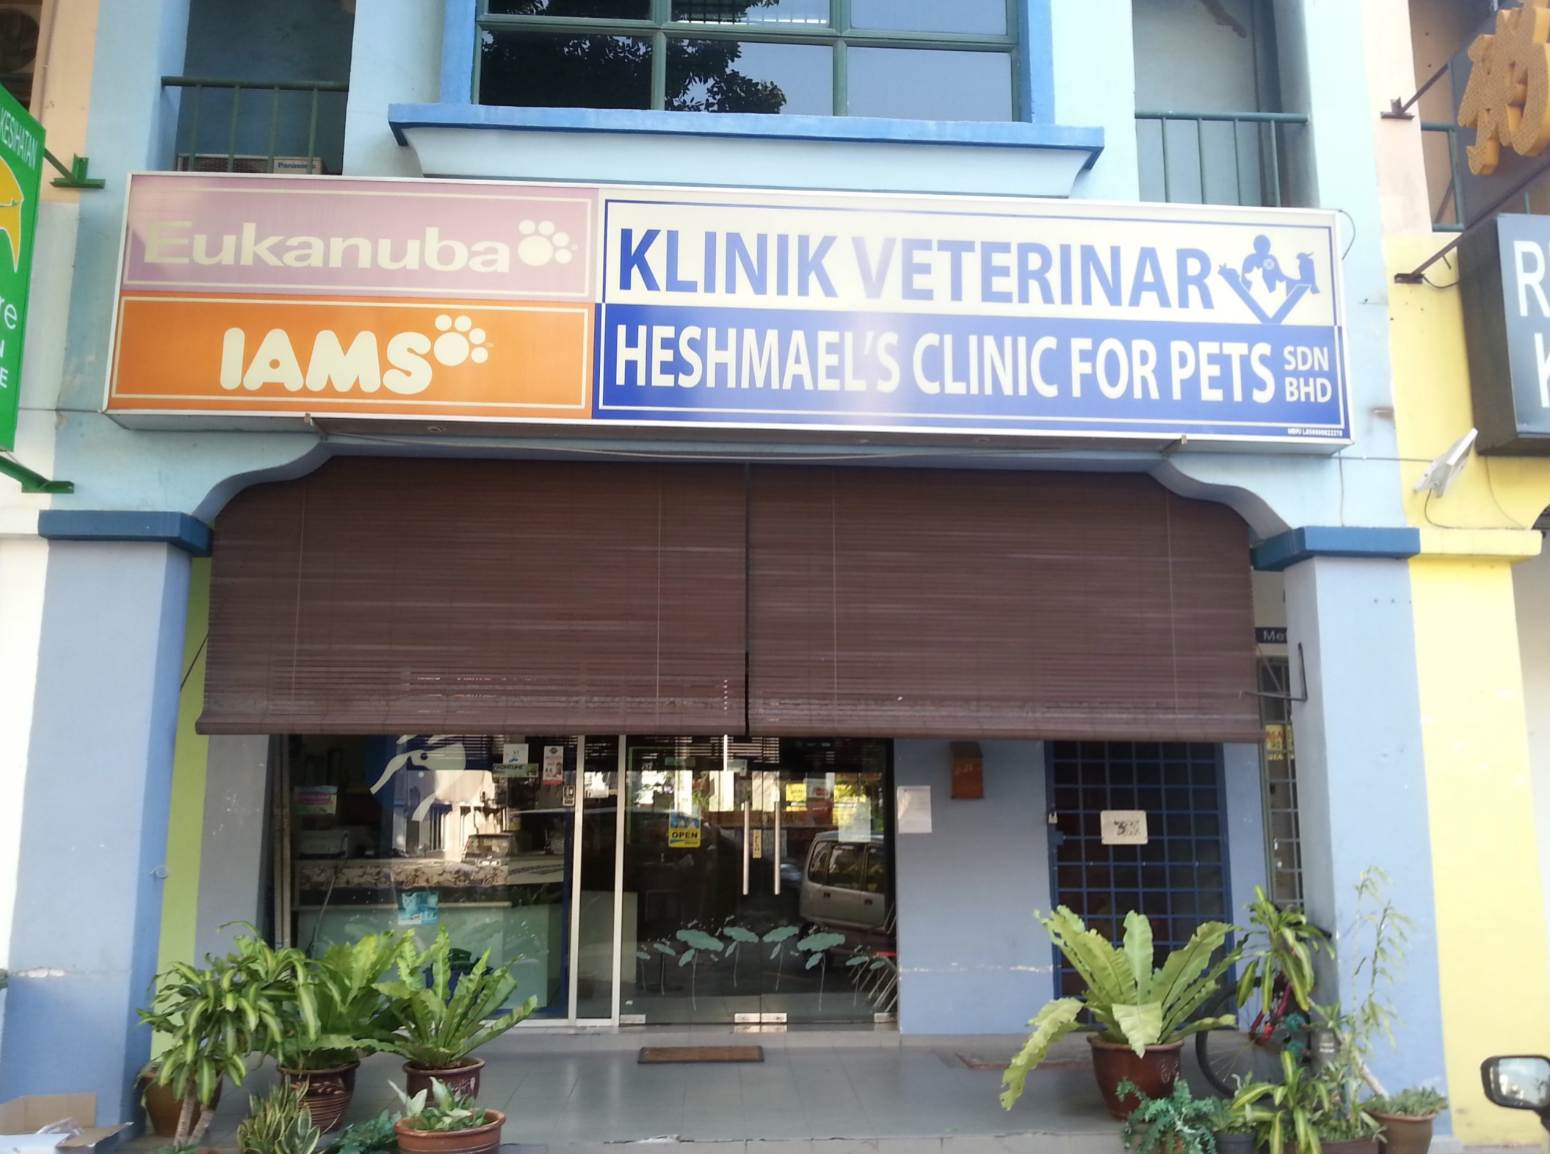 Veterinarians clinics and animal hospitals - Heshmael Clinic For Pets